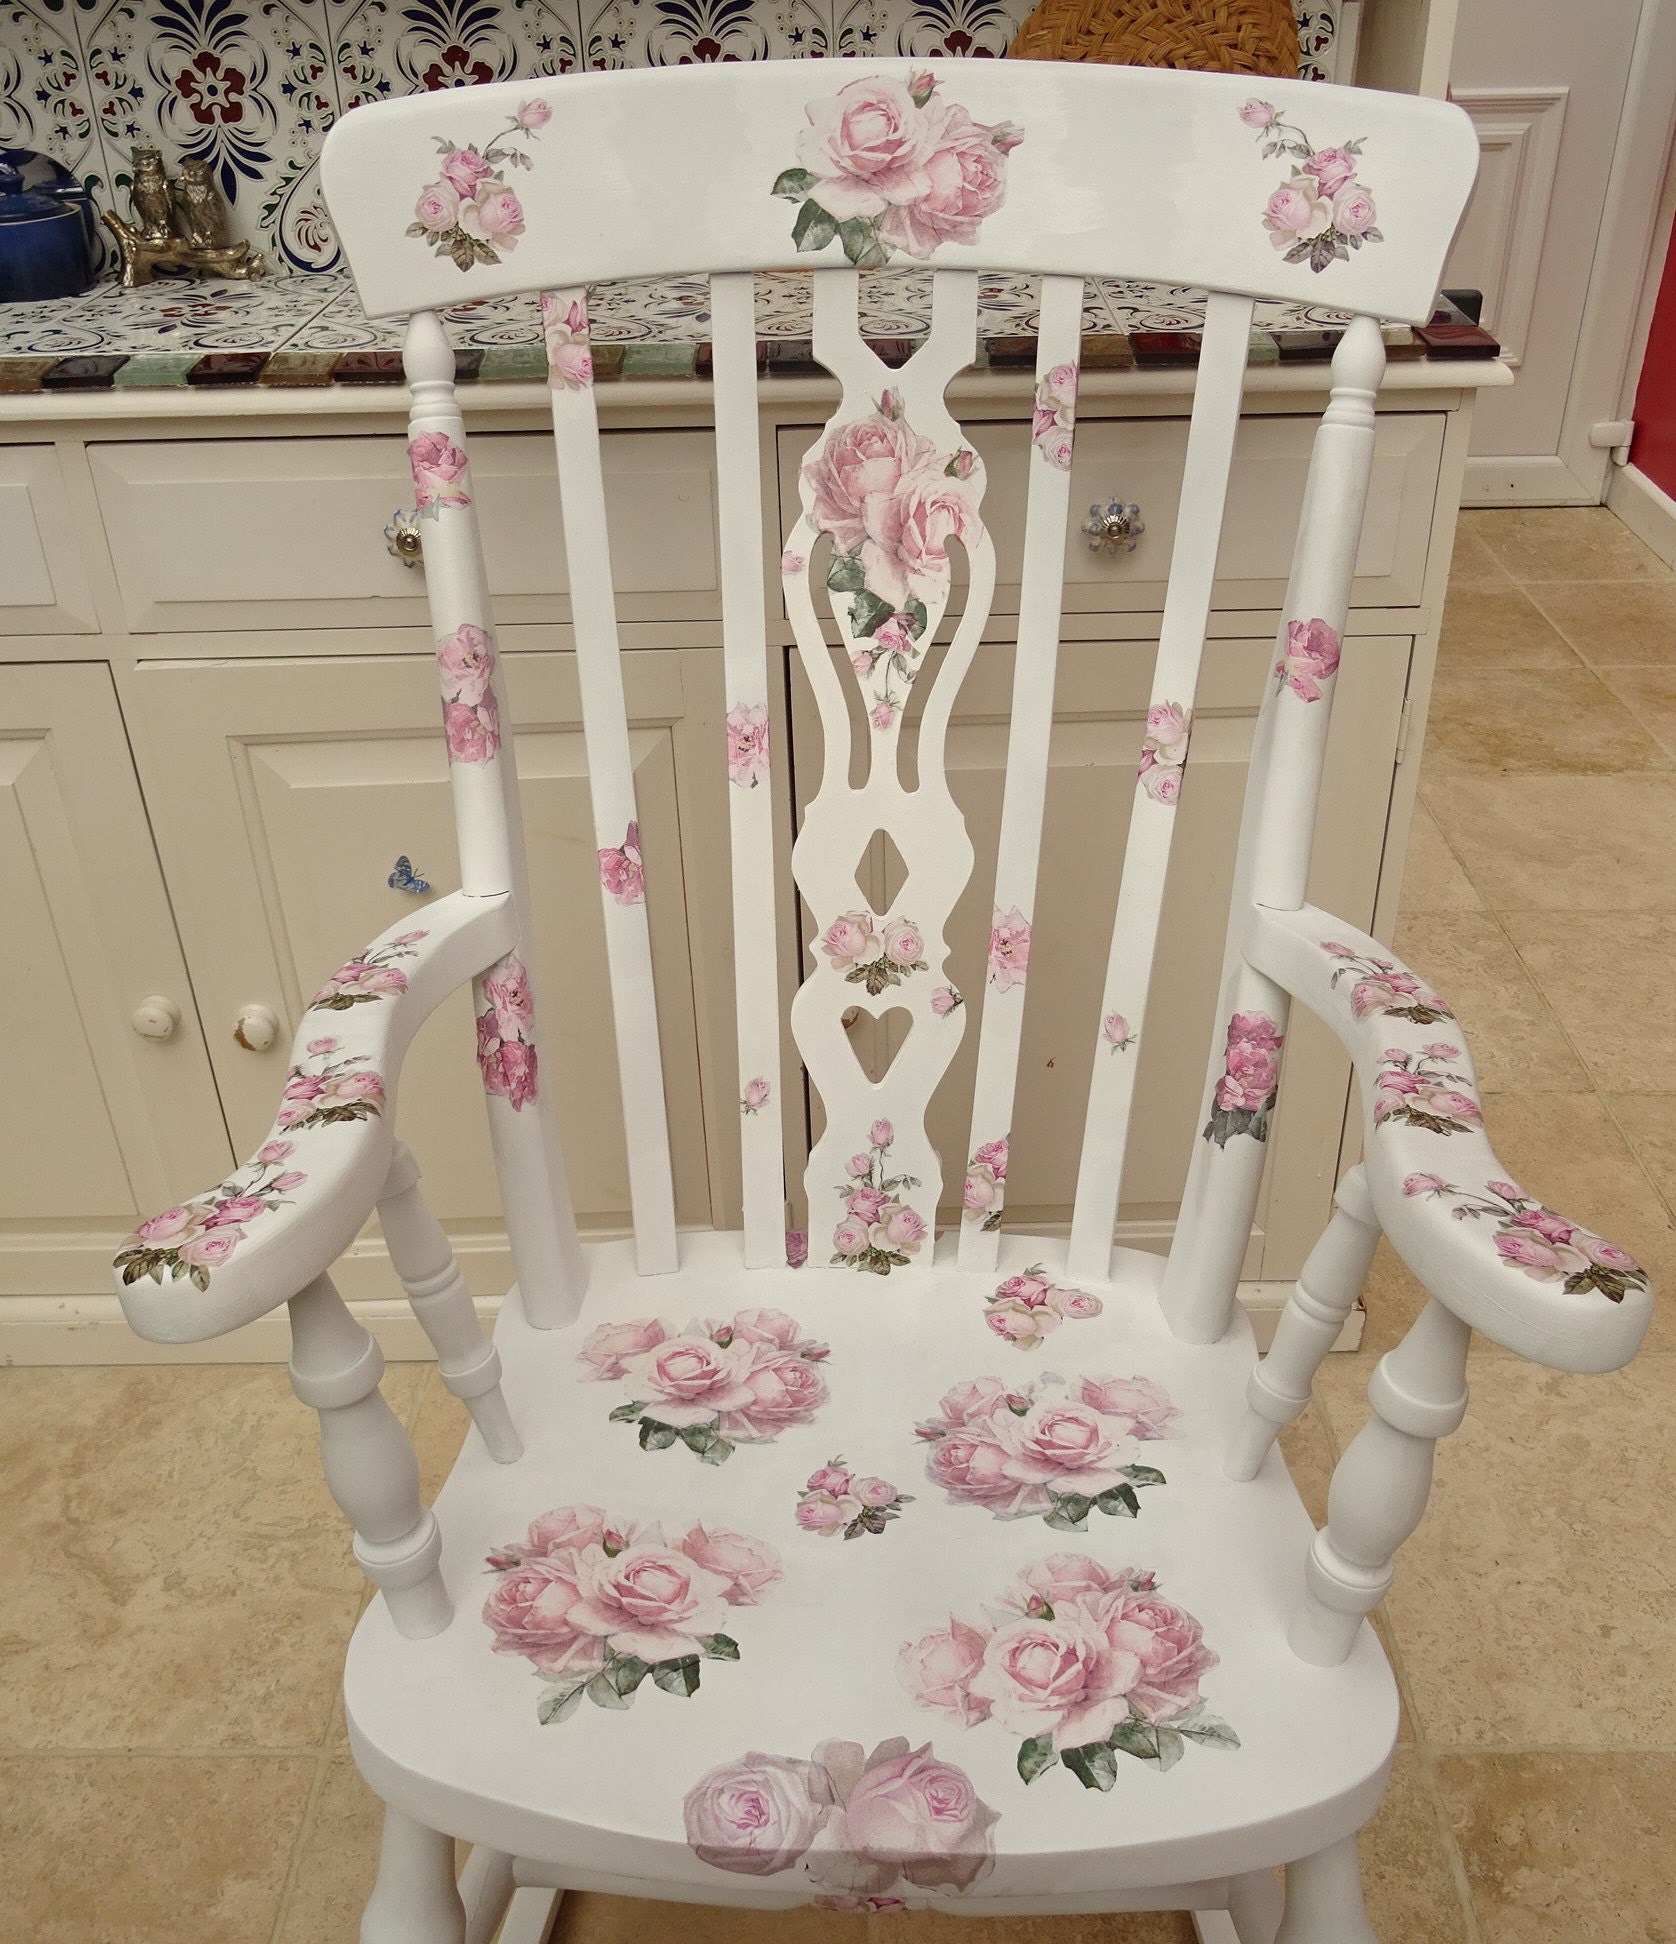 Sensational Rocking Chair Rose Design Decopatch Decoupage With A Gmtry Best Dining Table And Chair Ideas Images Gmtryco